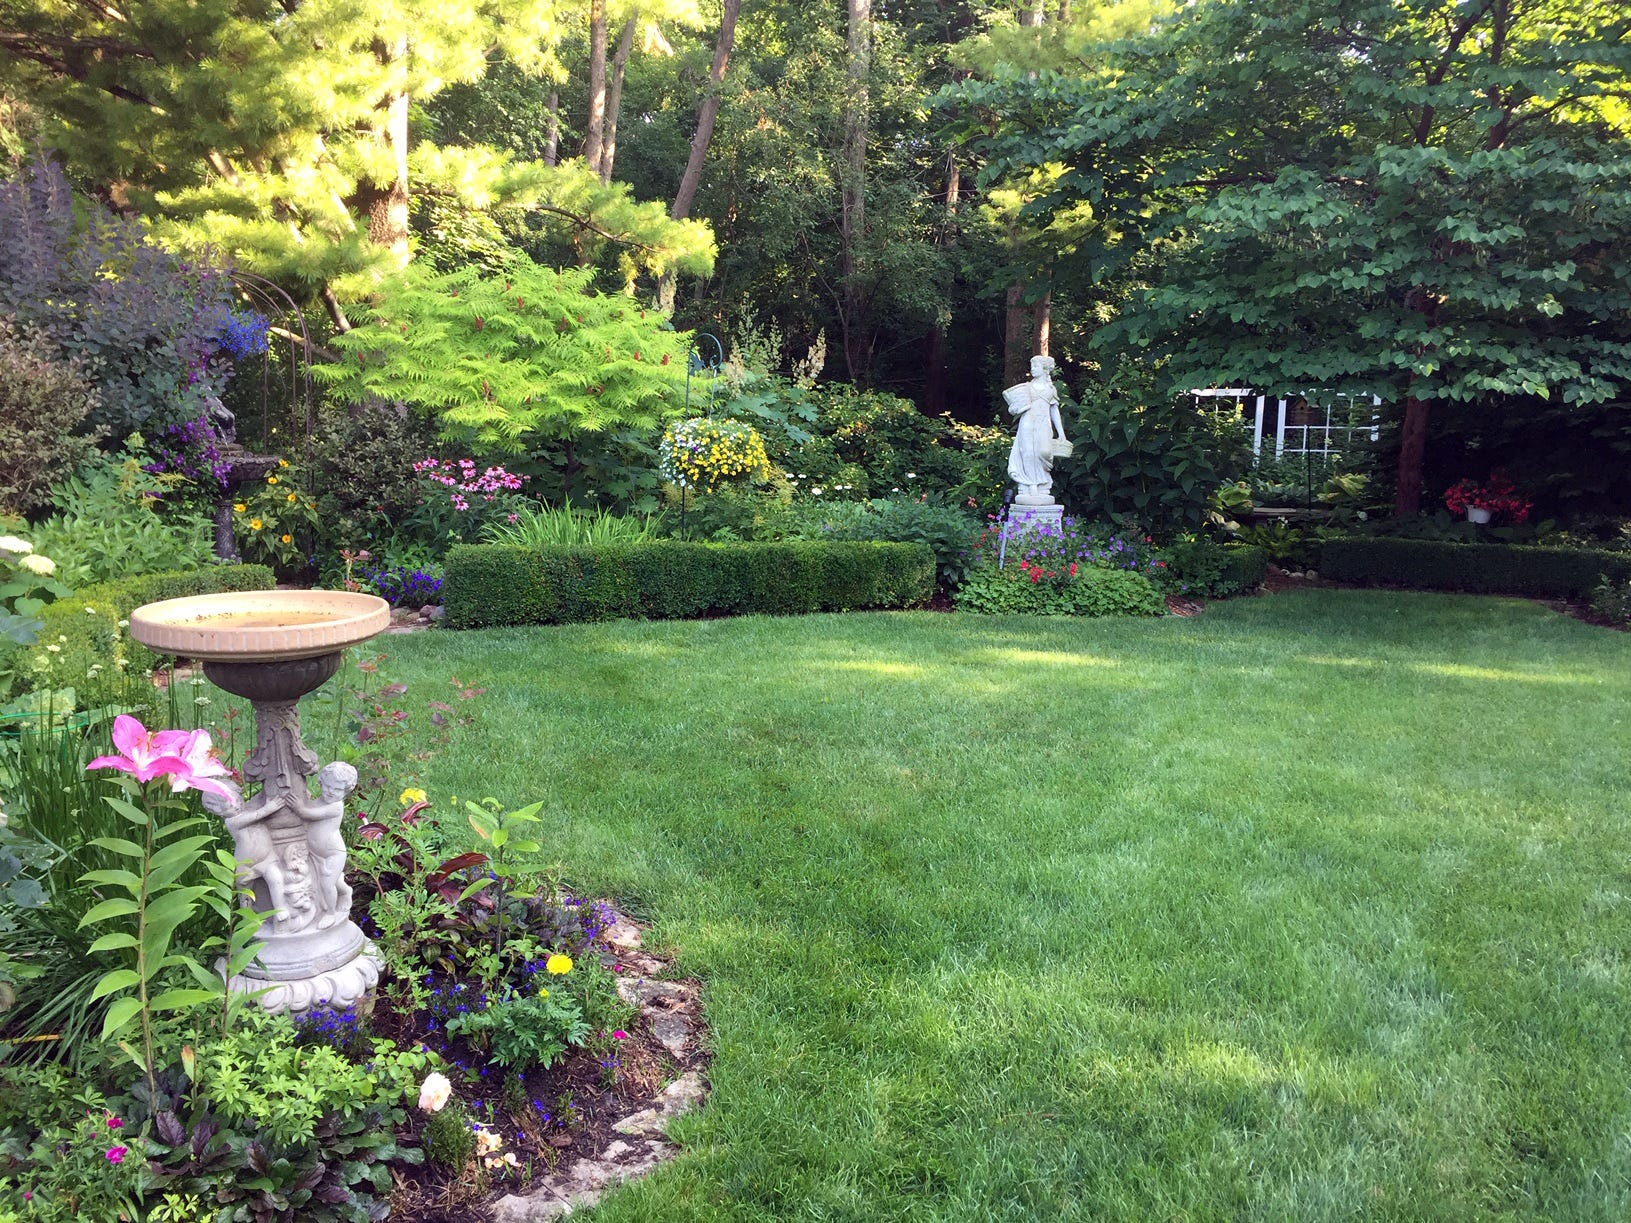 The Wissings did an English garden to go along with the interior of the home, as shown in this picture from summer.